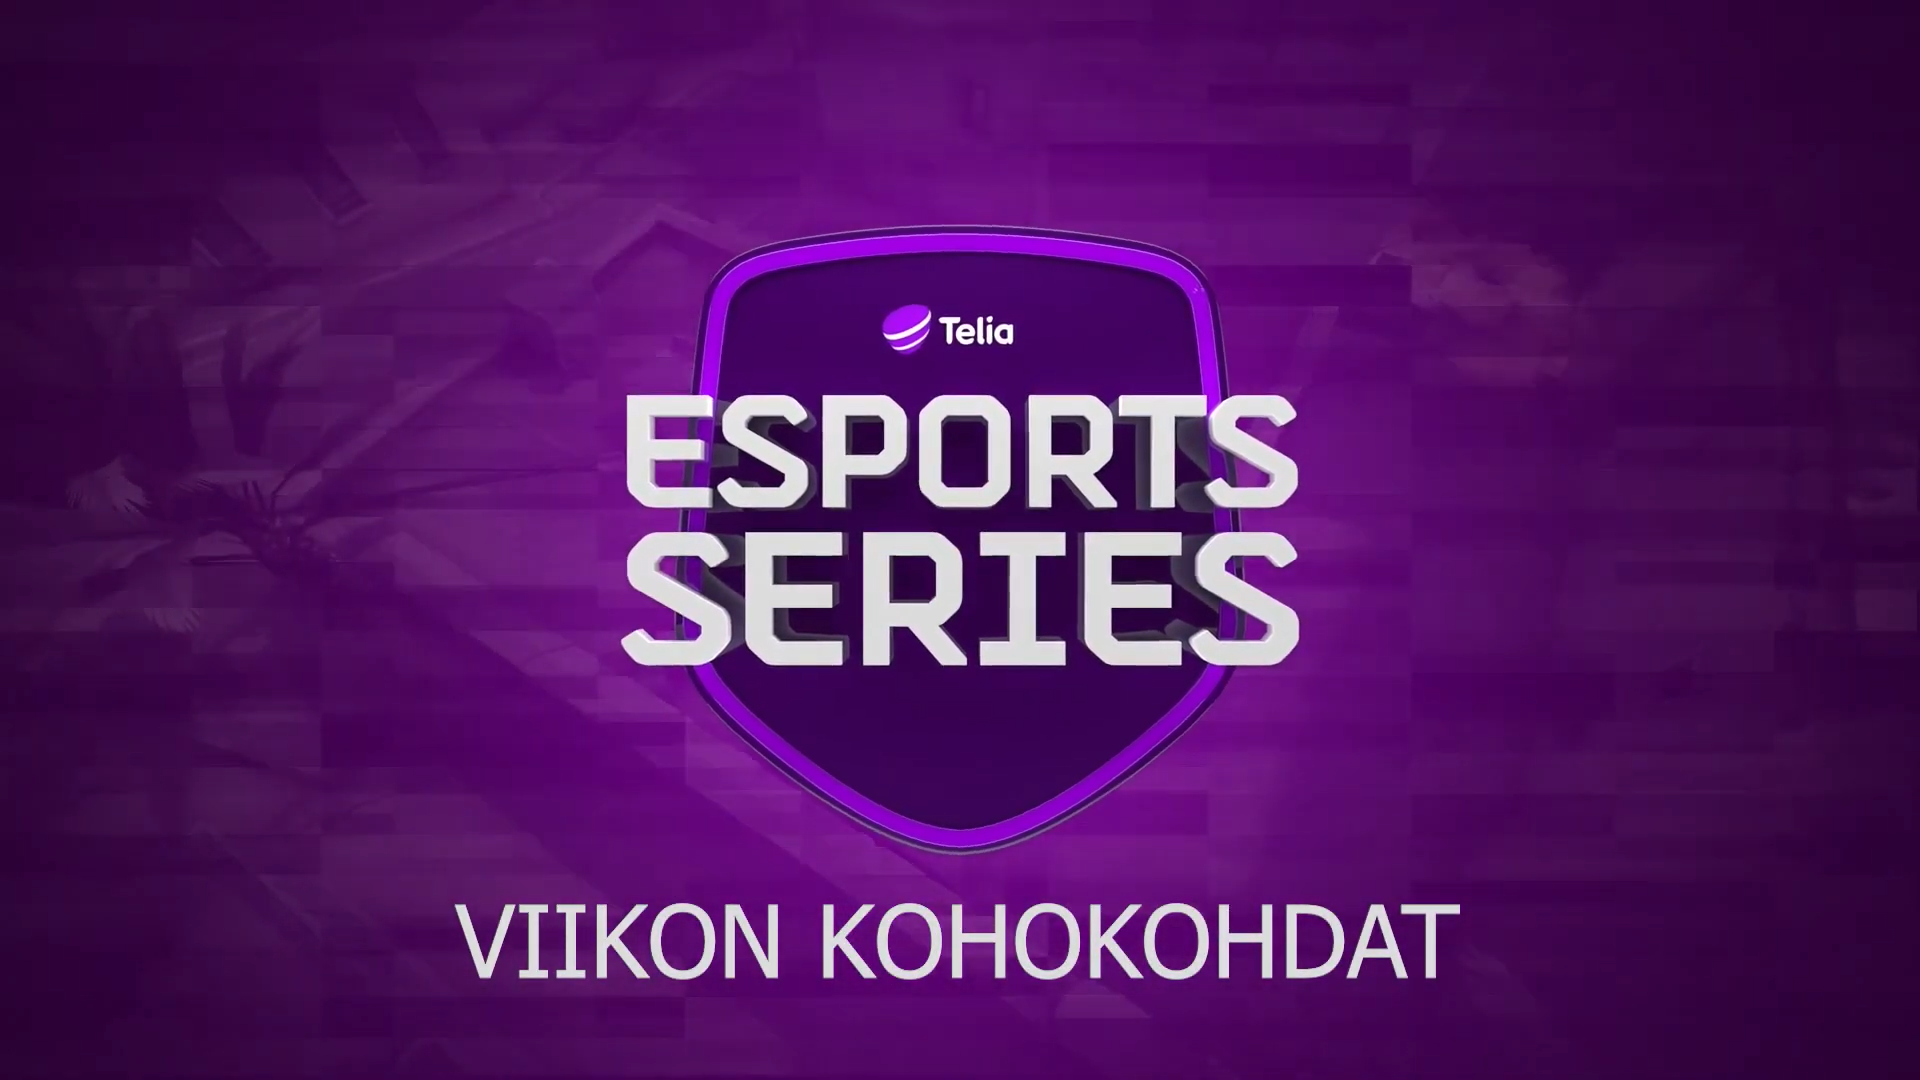 VIDEO: Telia Esports Seriesin mobiilipelin parhaat palat